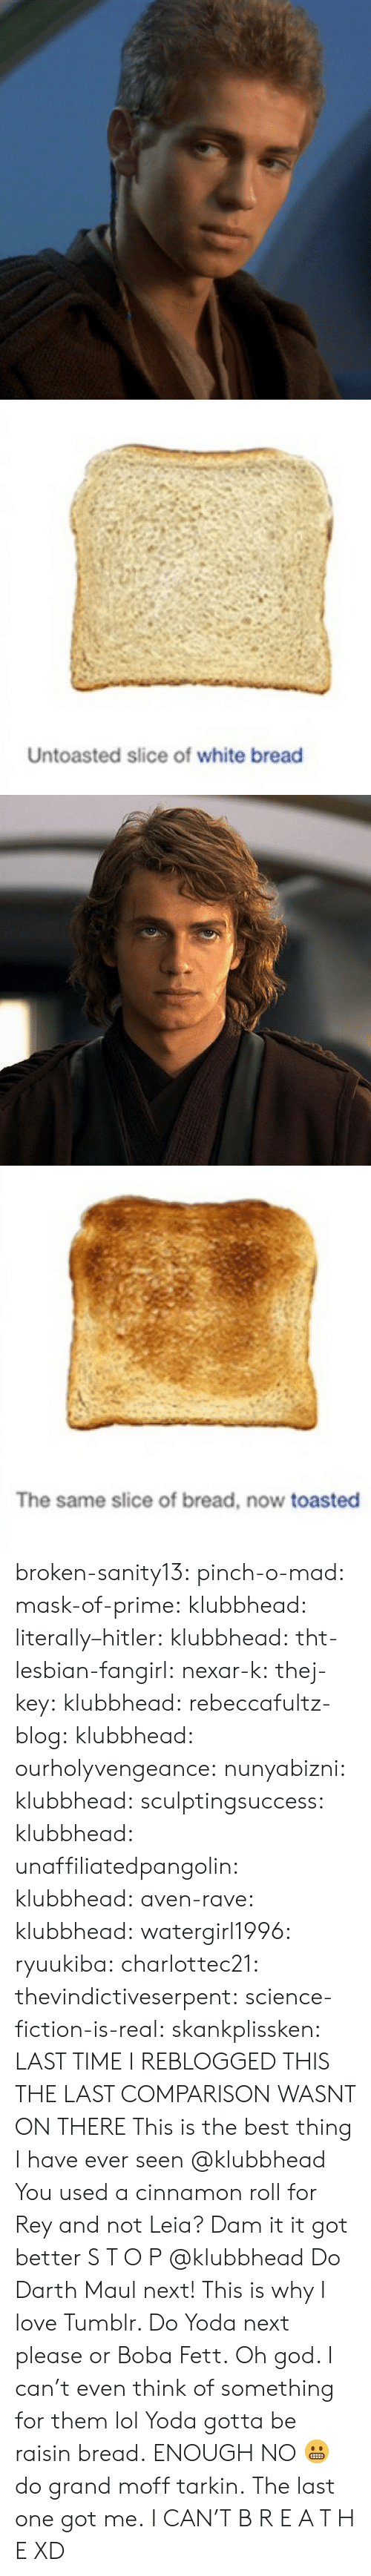 icon: Untoasted slice of white bread   The same slice of bread, now toasted broken-sanity13:  pinch-o-mad:   mask-of-prime:  klubbhead:  literally–hitler:  klubbhead:  tht-lesbian-fangirl:  nexar-k:  thej-key:  klubbhead:  rebeccafultz-blog:   klubbhead:  ourholyvengeance:  nunyabizni:  klubbhead:  sculptingsuccess:  klubbhead:   unaffiliatedpangolin:  klubbhead:  aven-rave:  klubbhead:   watergirl1996:  ryuukiba:  charlottec21:  thevindictiveserpent:  science-fiction-is-real:  skankplissken:                   LAST TIME I REBLOGGED THIS THE LAST COMPARISON WASNT ON THERE    This is the best thing I have ever seen   @klubbhead You used a cinnamon roll for Rey and not Leia?    Dam it it got better   S T O P  @klubbhead Do Darth Maul next!   This is why I love Tumblr. Do Yoda next please or Boba Fett.   Oh god. I can't even think of something for them lol  Yoda gotta be raisin bread.   ENOUGH   NO 😬 do grand moff tarkin.     The last one got me.   I CAN'T  B R E A T H E  XD